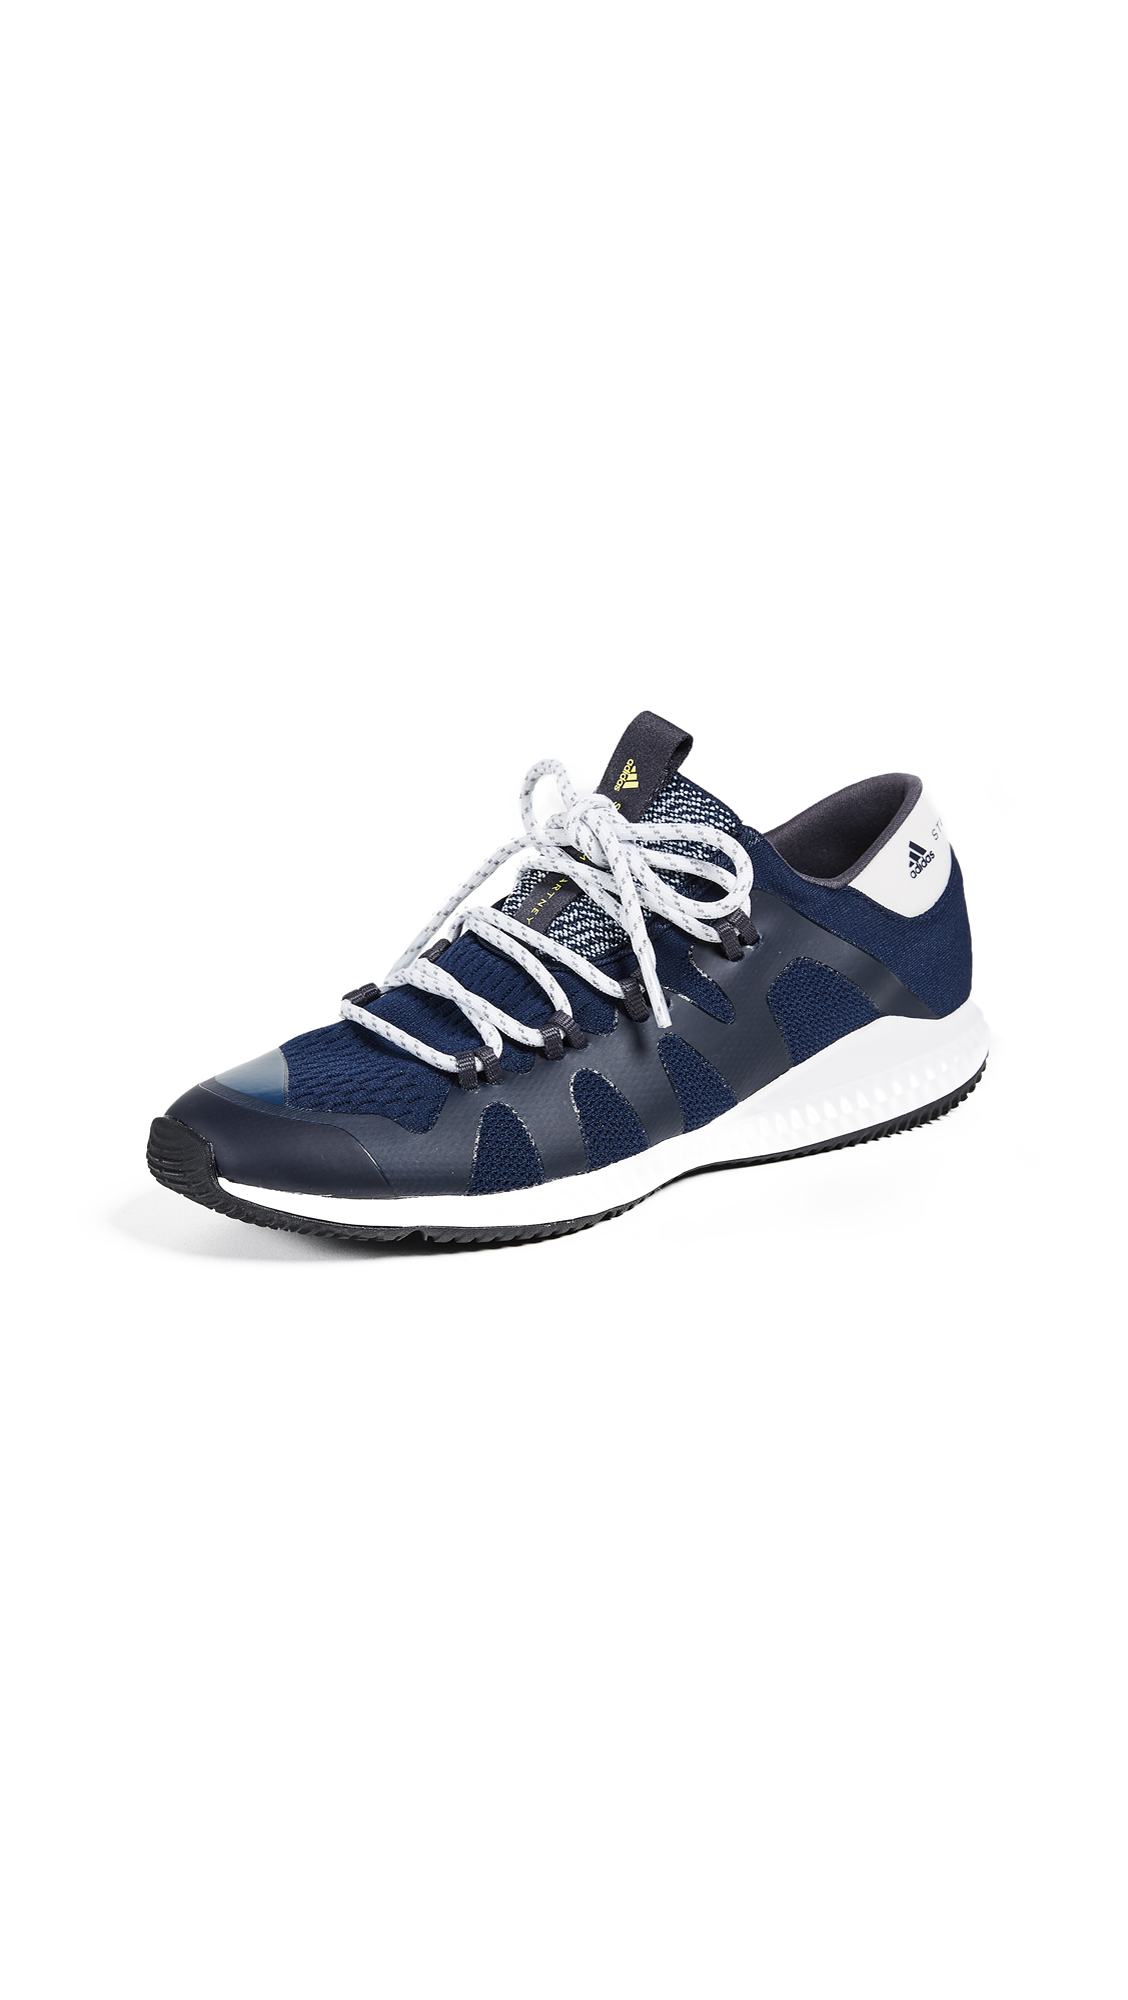 adidas by Stella McCartney CrazyTrain Pro Sneakers - Collegiate Navy/White/Aerolime